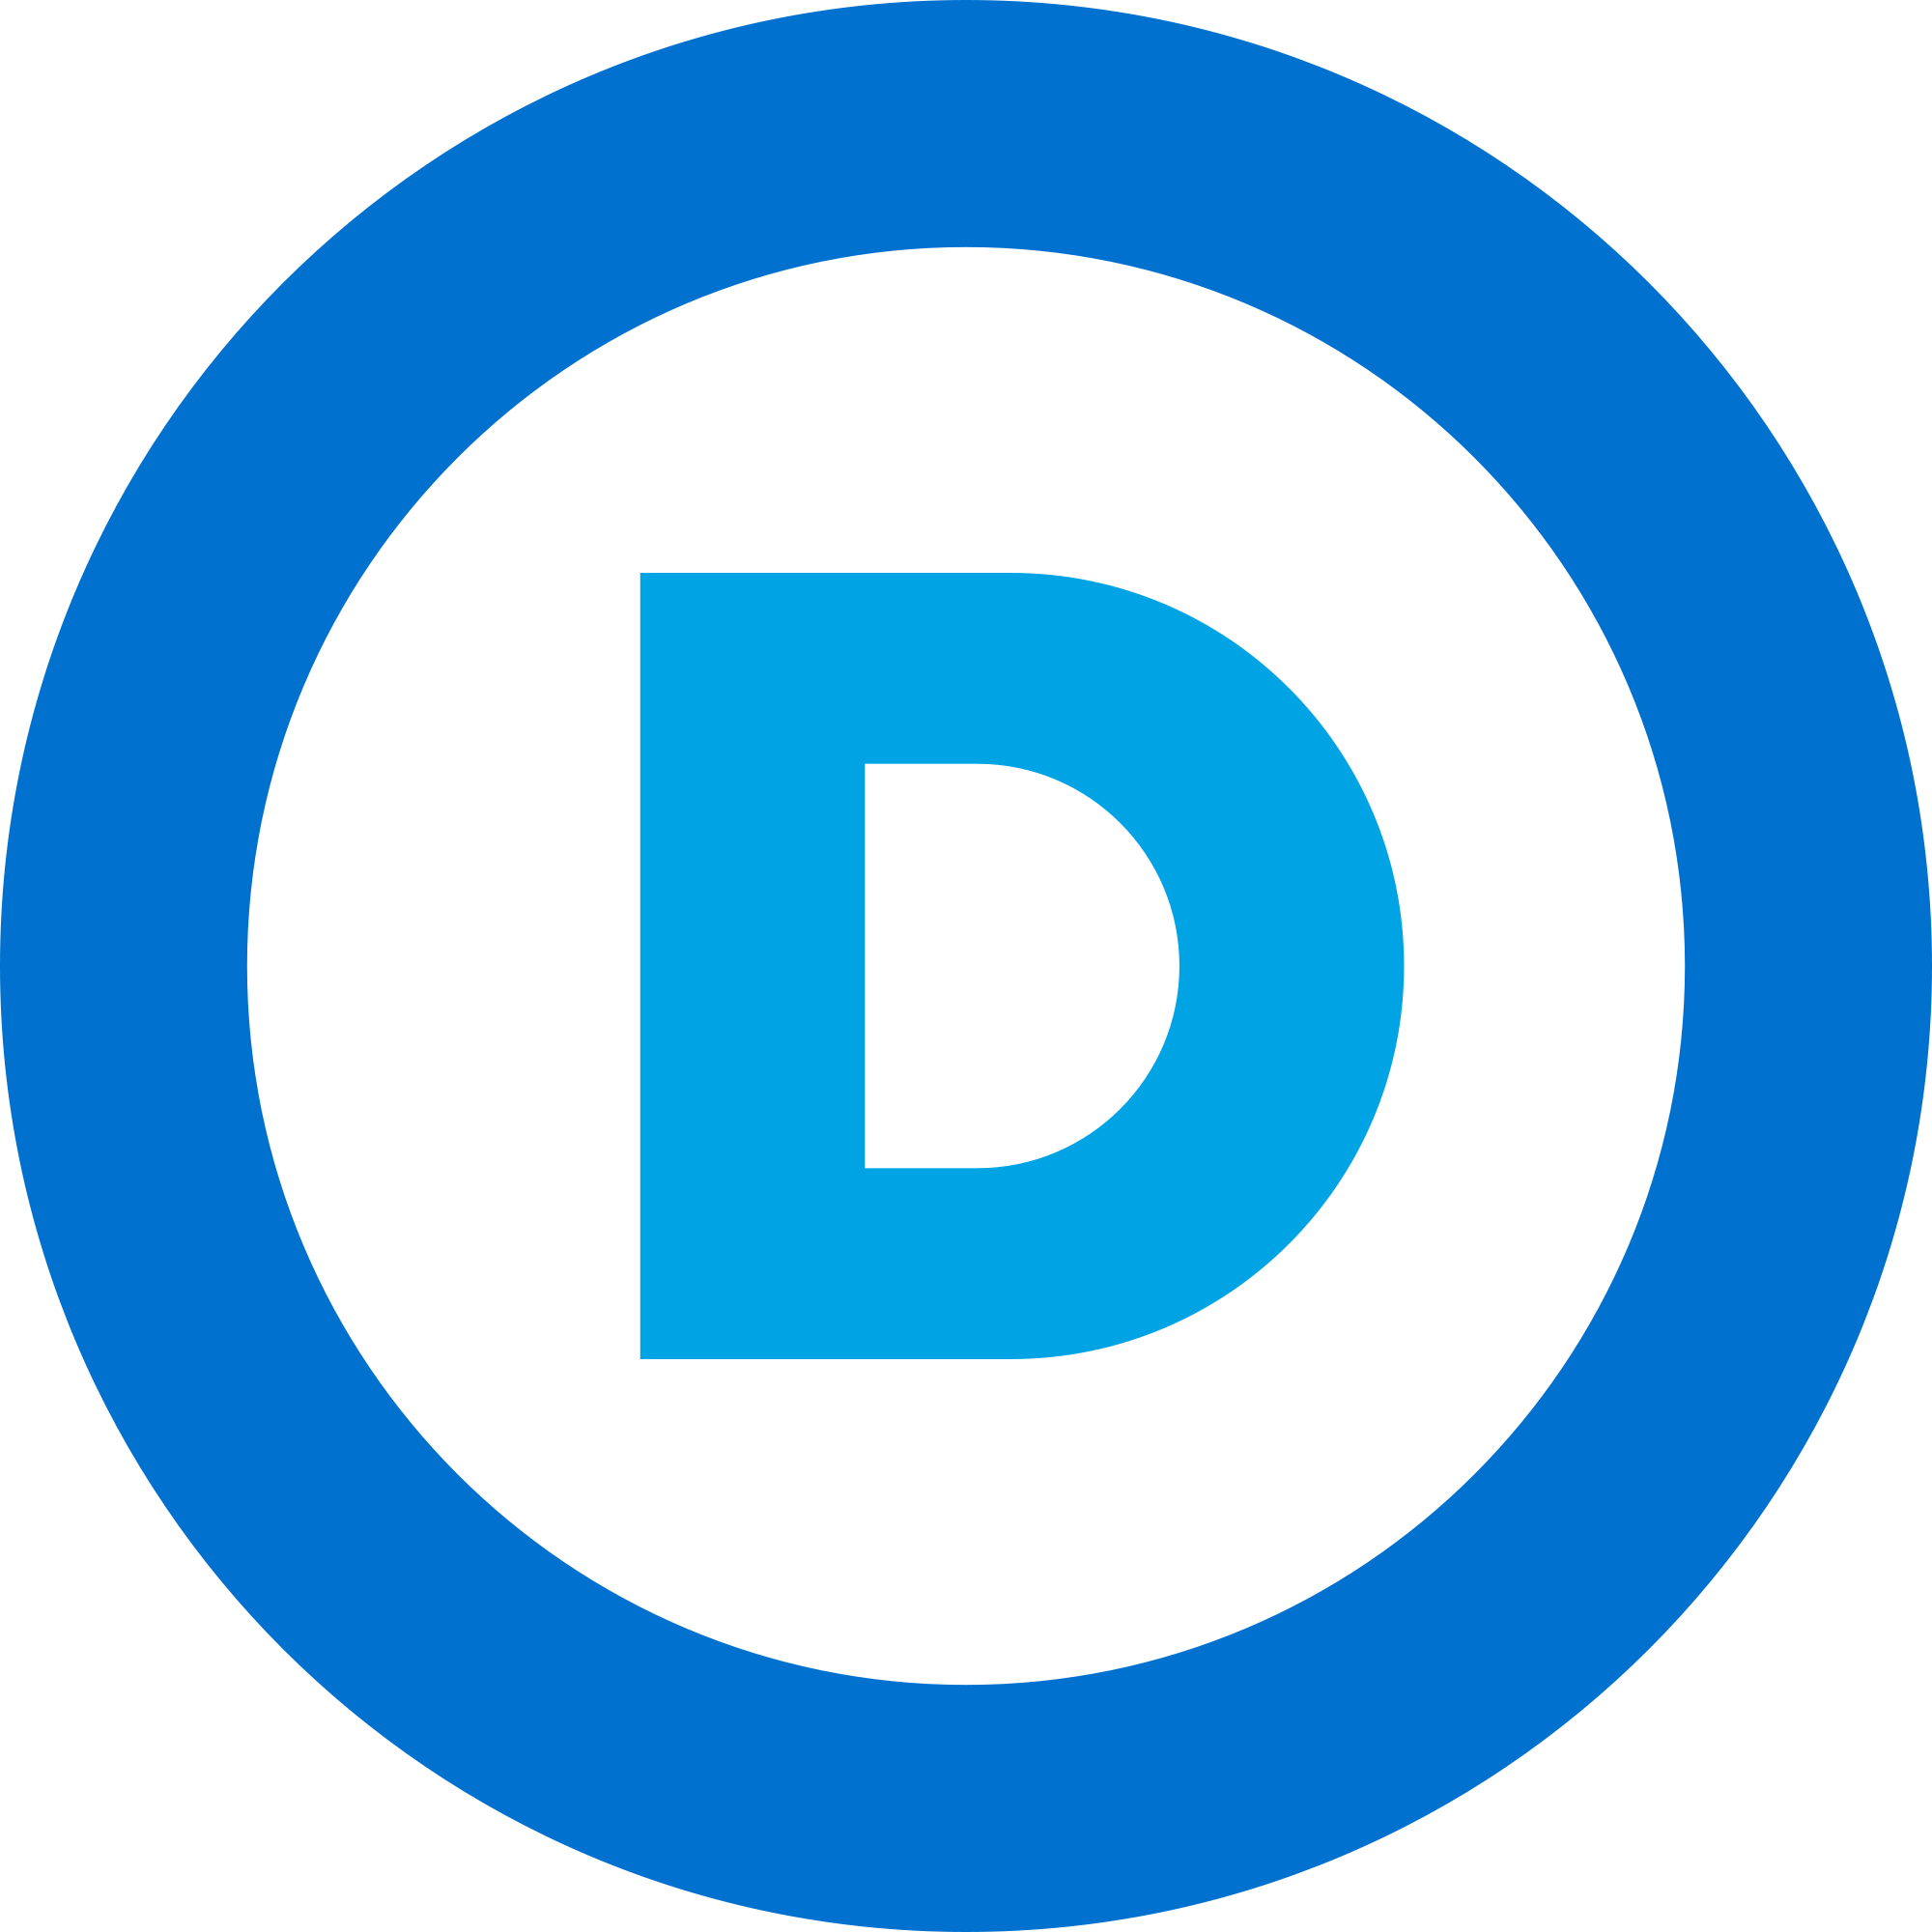 Democratic party png. Image us logo the